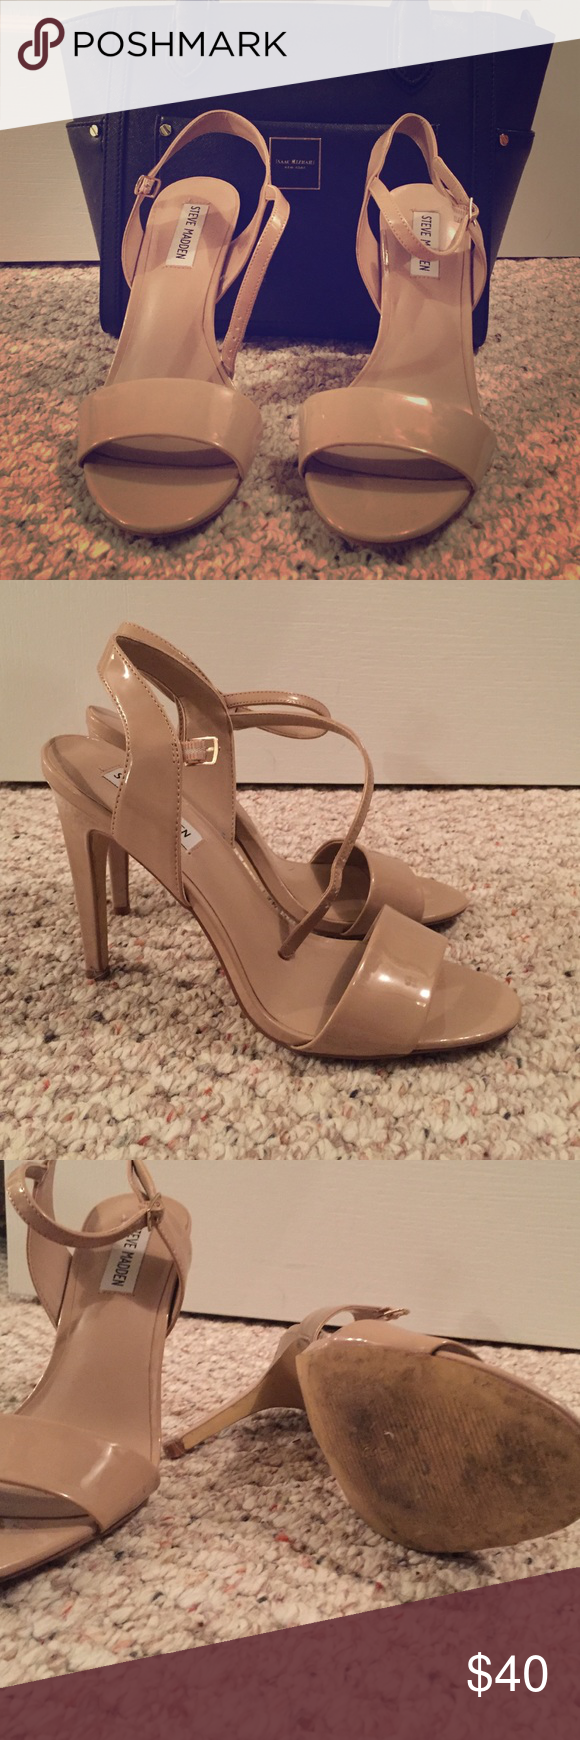 ✨BOGO! ✨Steve Madden Patent Leather Nude Heels Only worn once! In great condition. I just bought another pair that fit me better. Steve Madden Shoes Heels